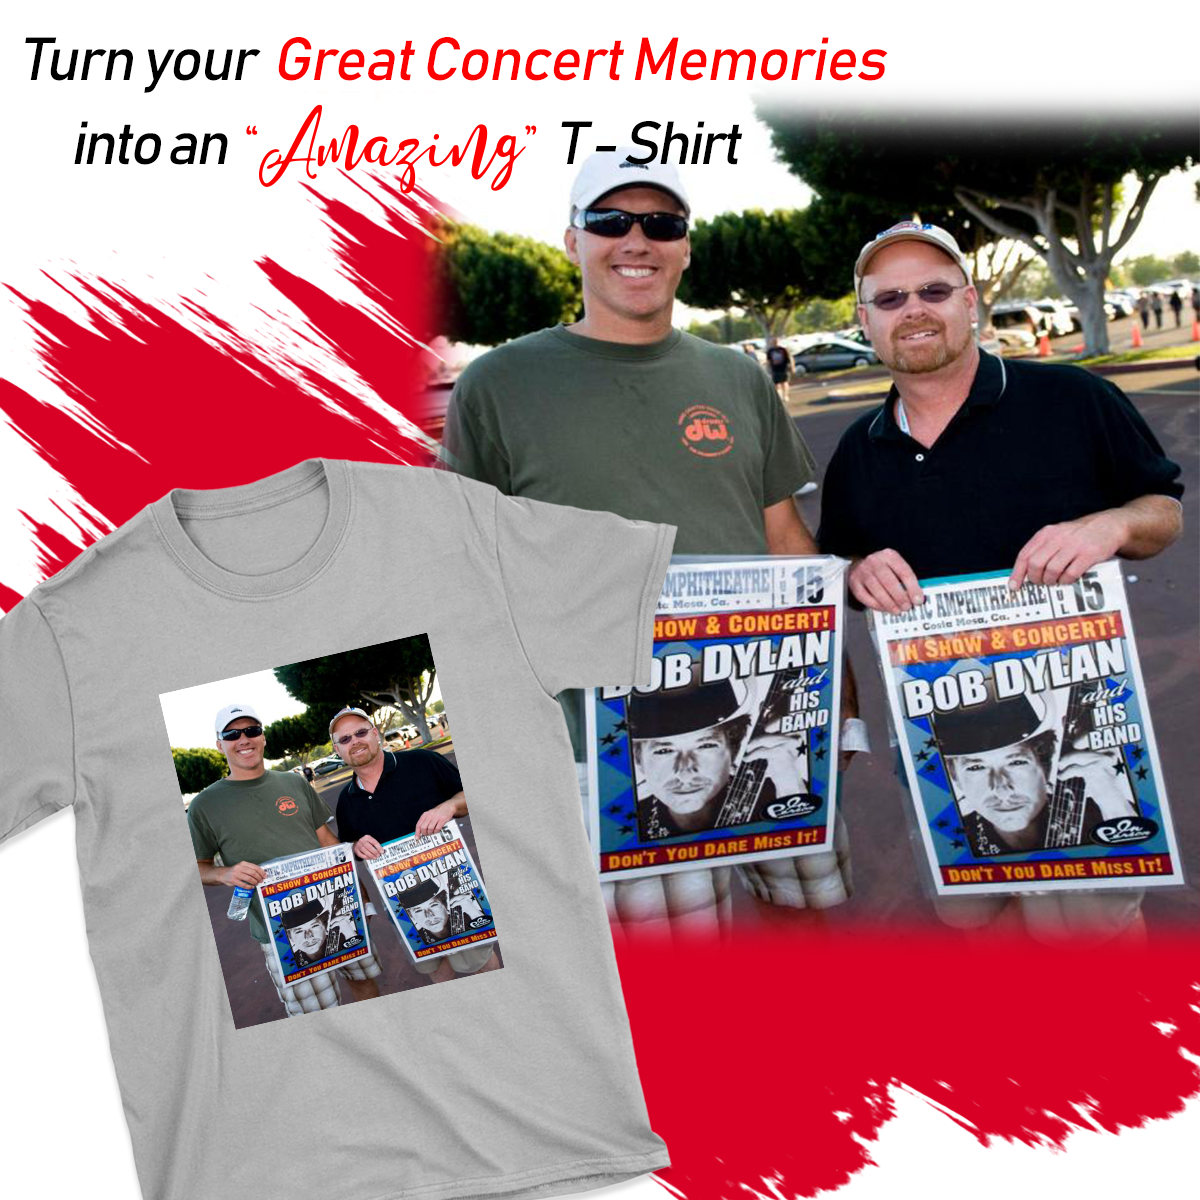 UPLOAD YOUR CONCERT MEMORY PHOTO ON T-SHIRT